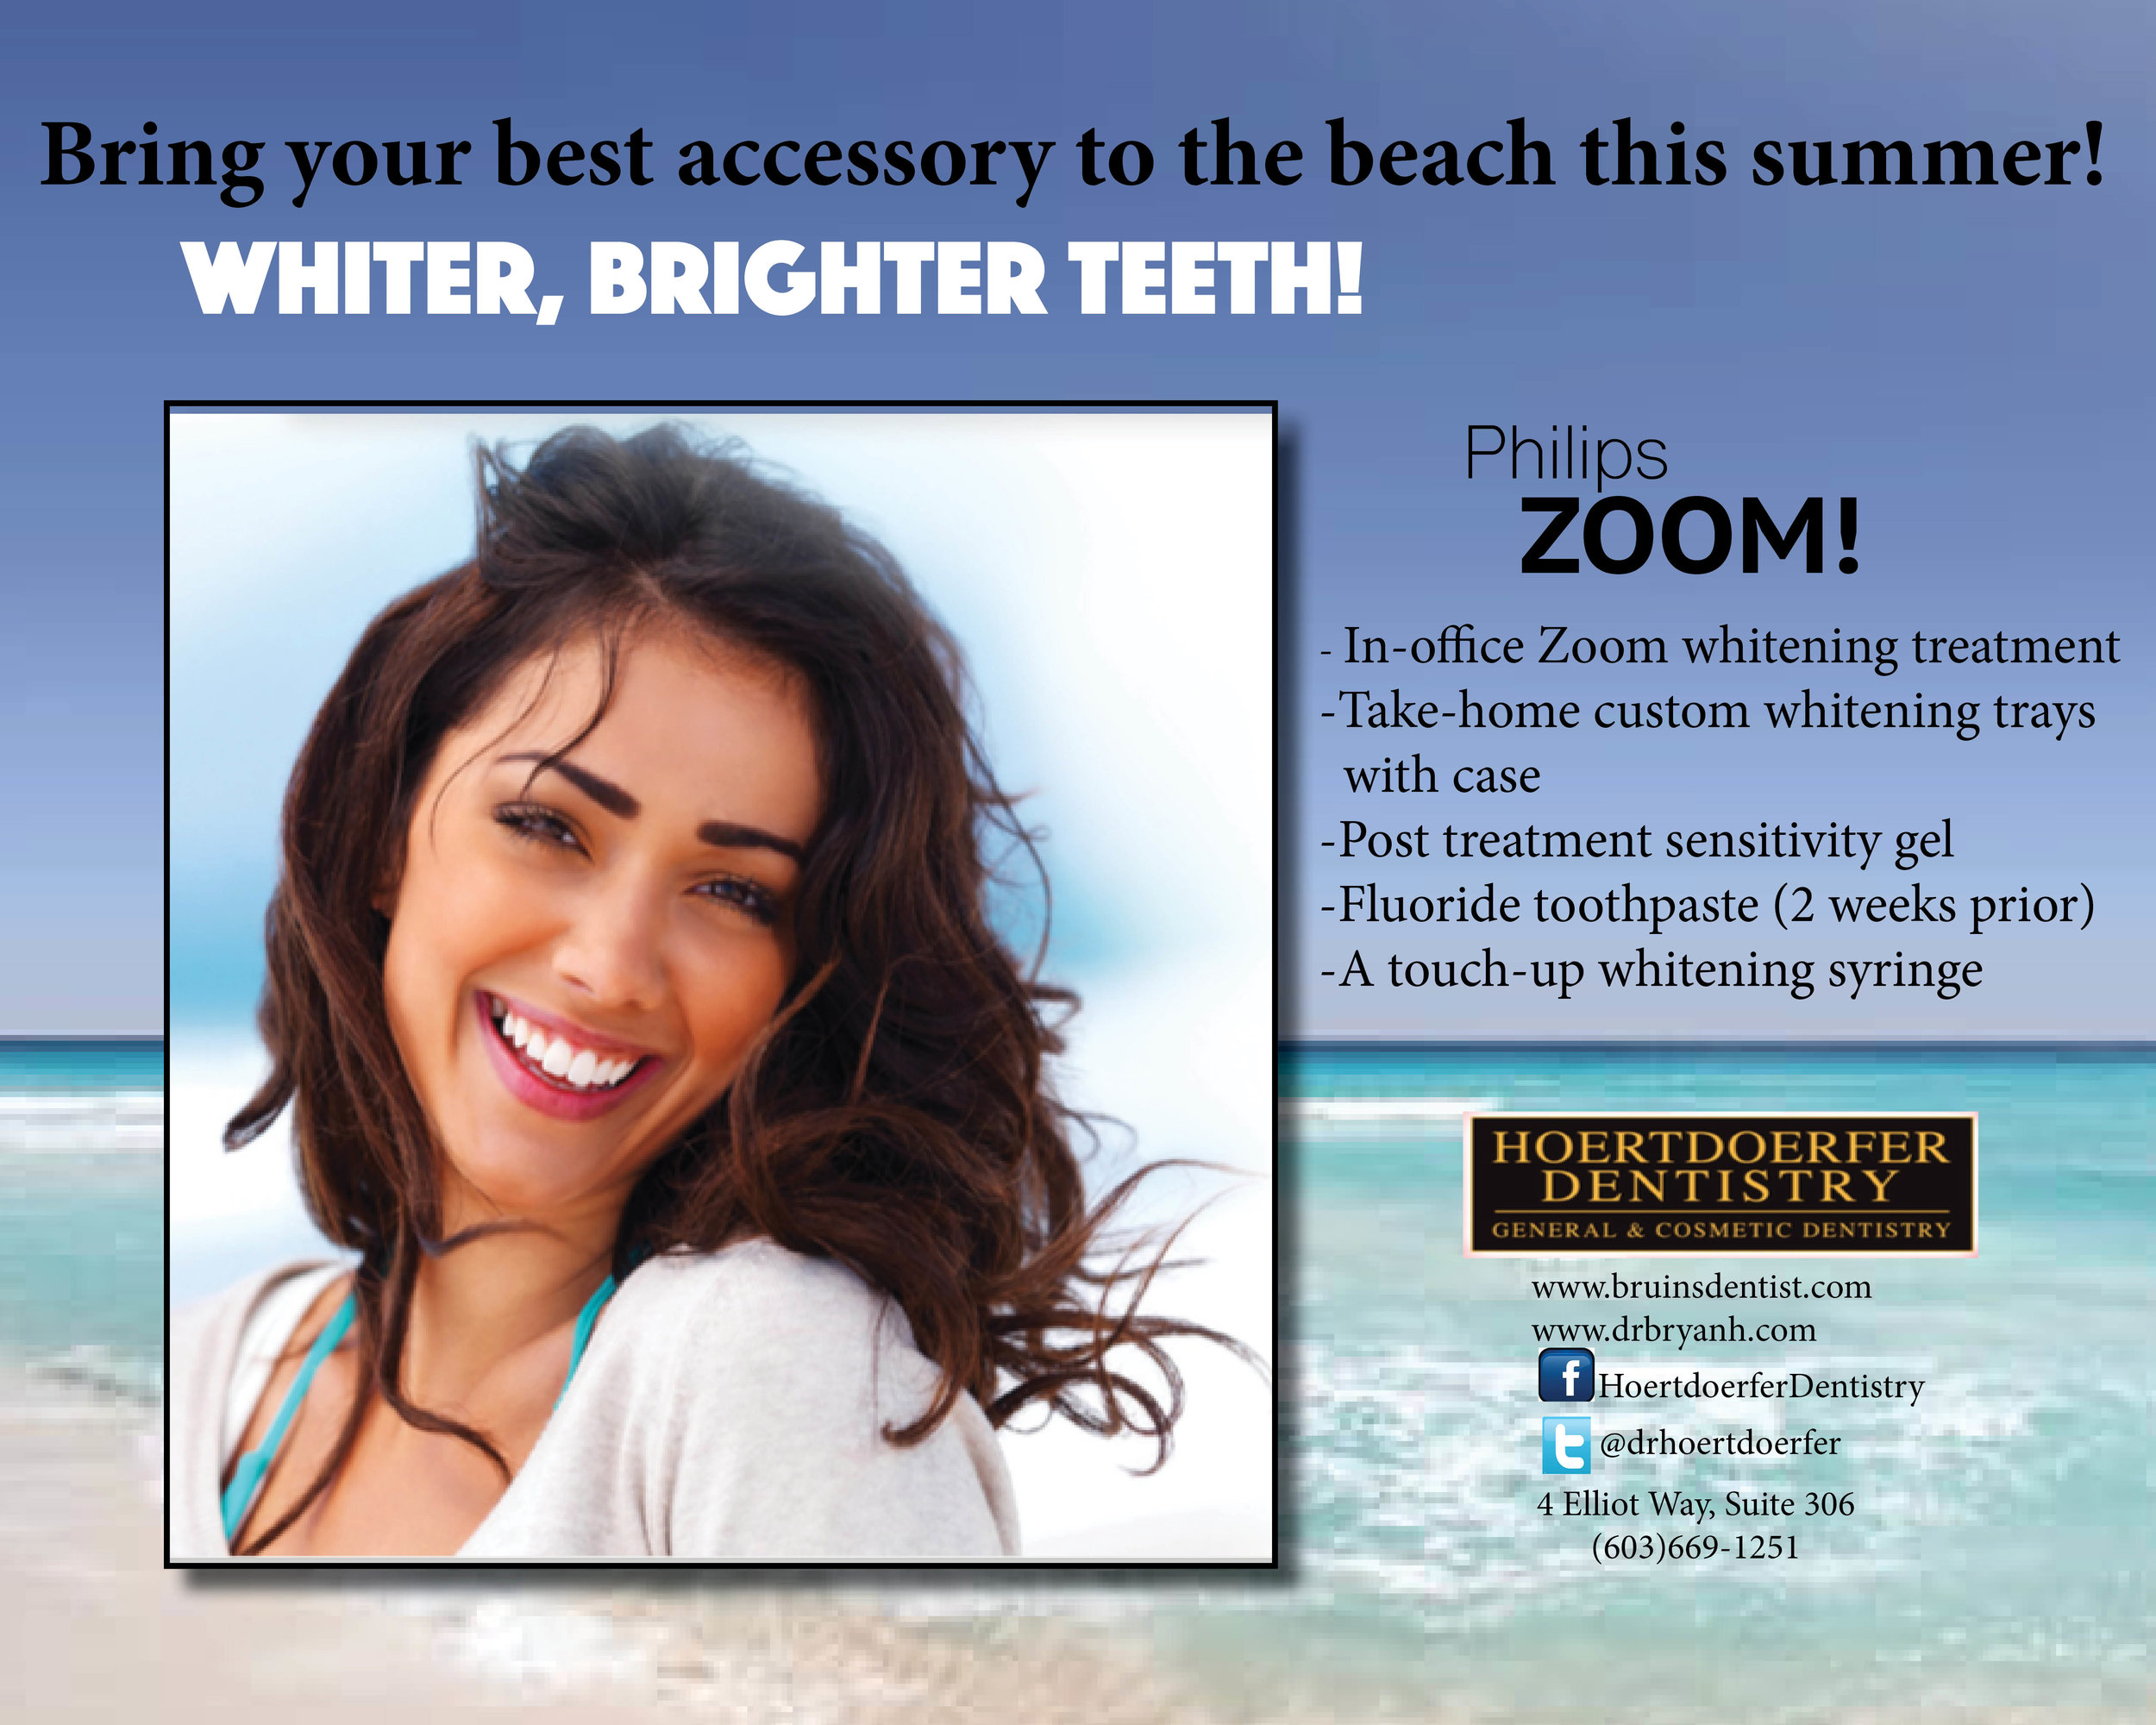 Philips Zoom in-office whitening treatment is a quick and safe way to brighten your smile!   Because you deserve a beautiful smile! Call to make an appointment today!